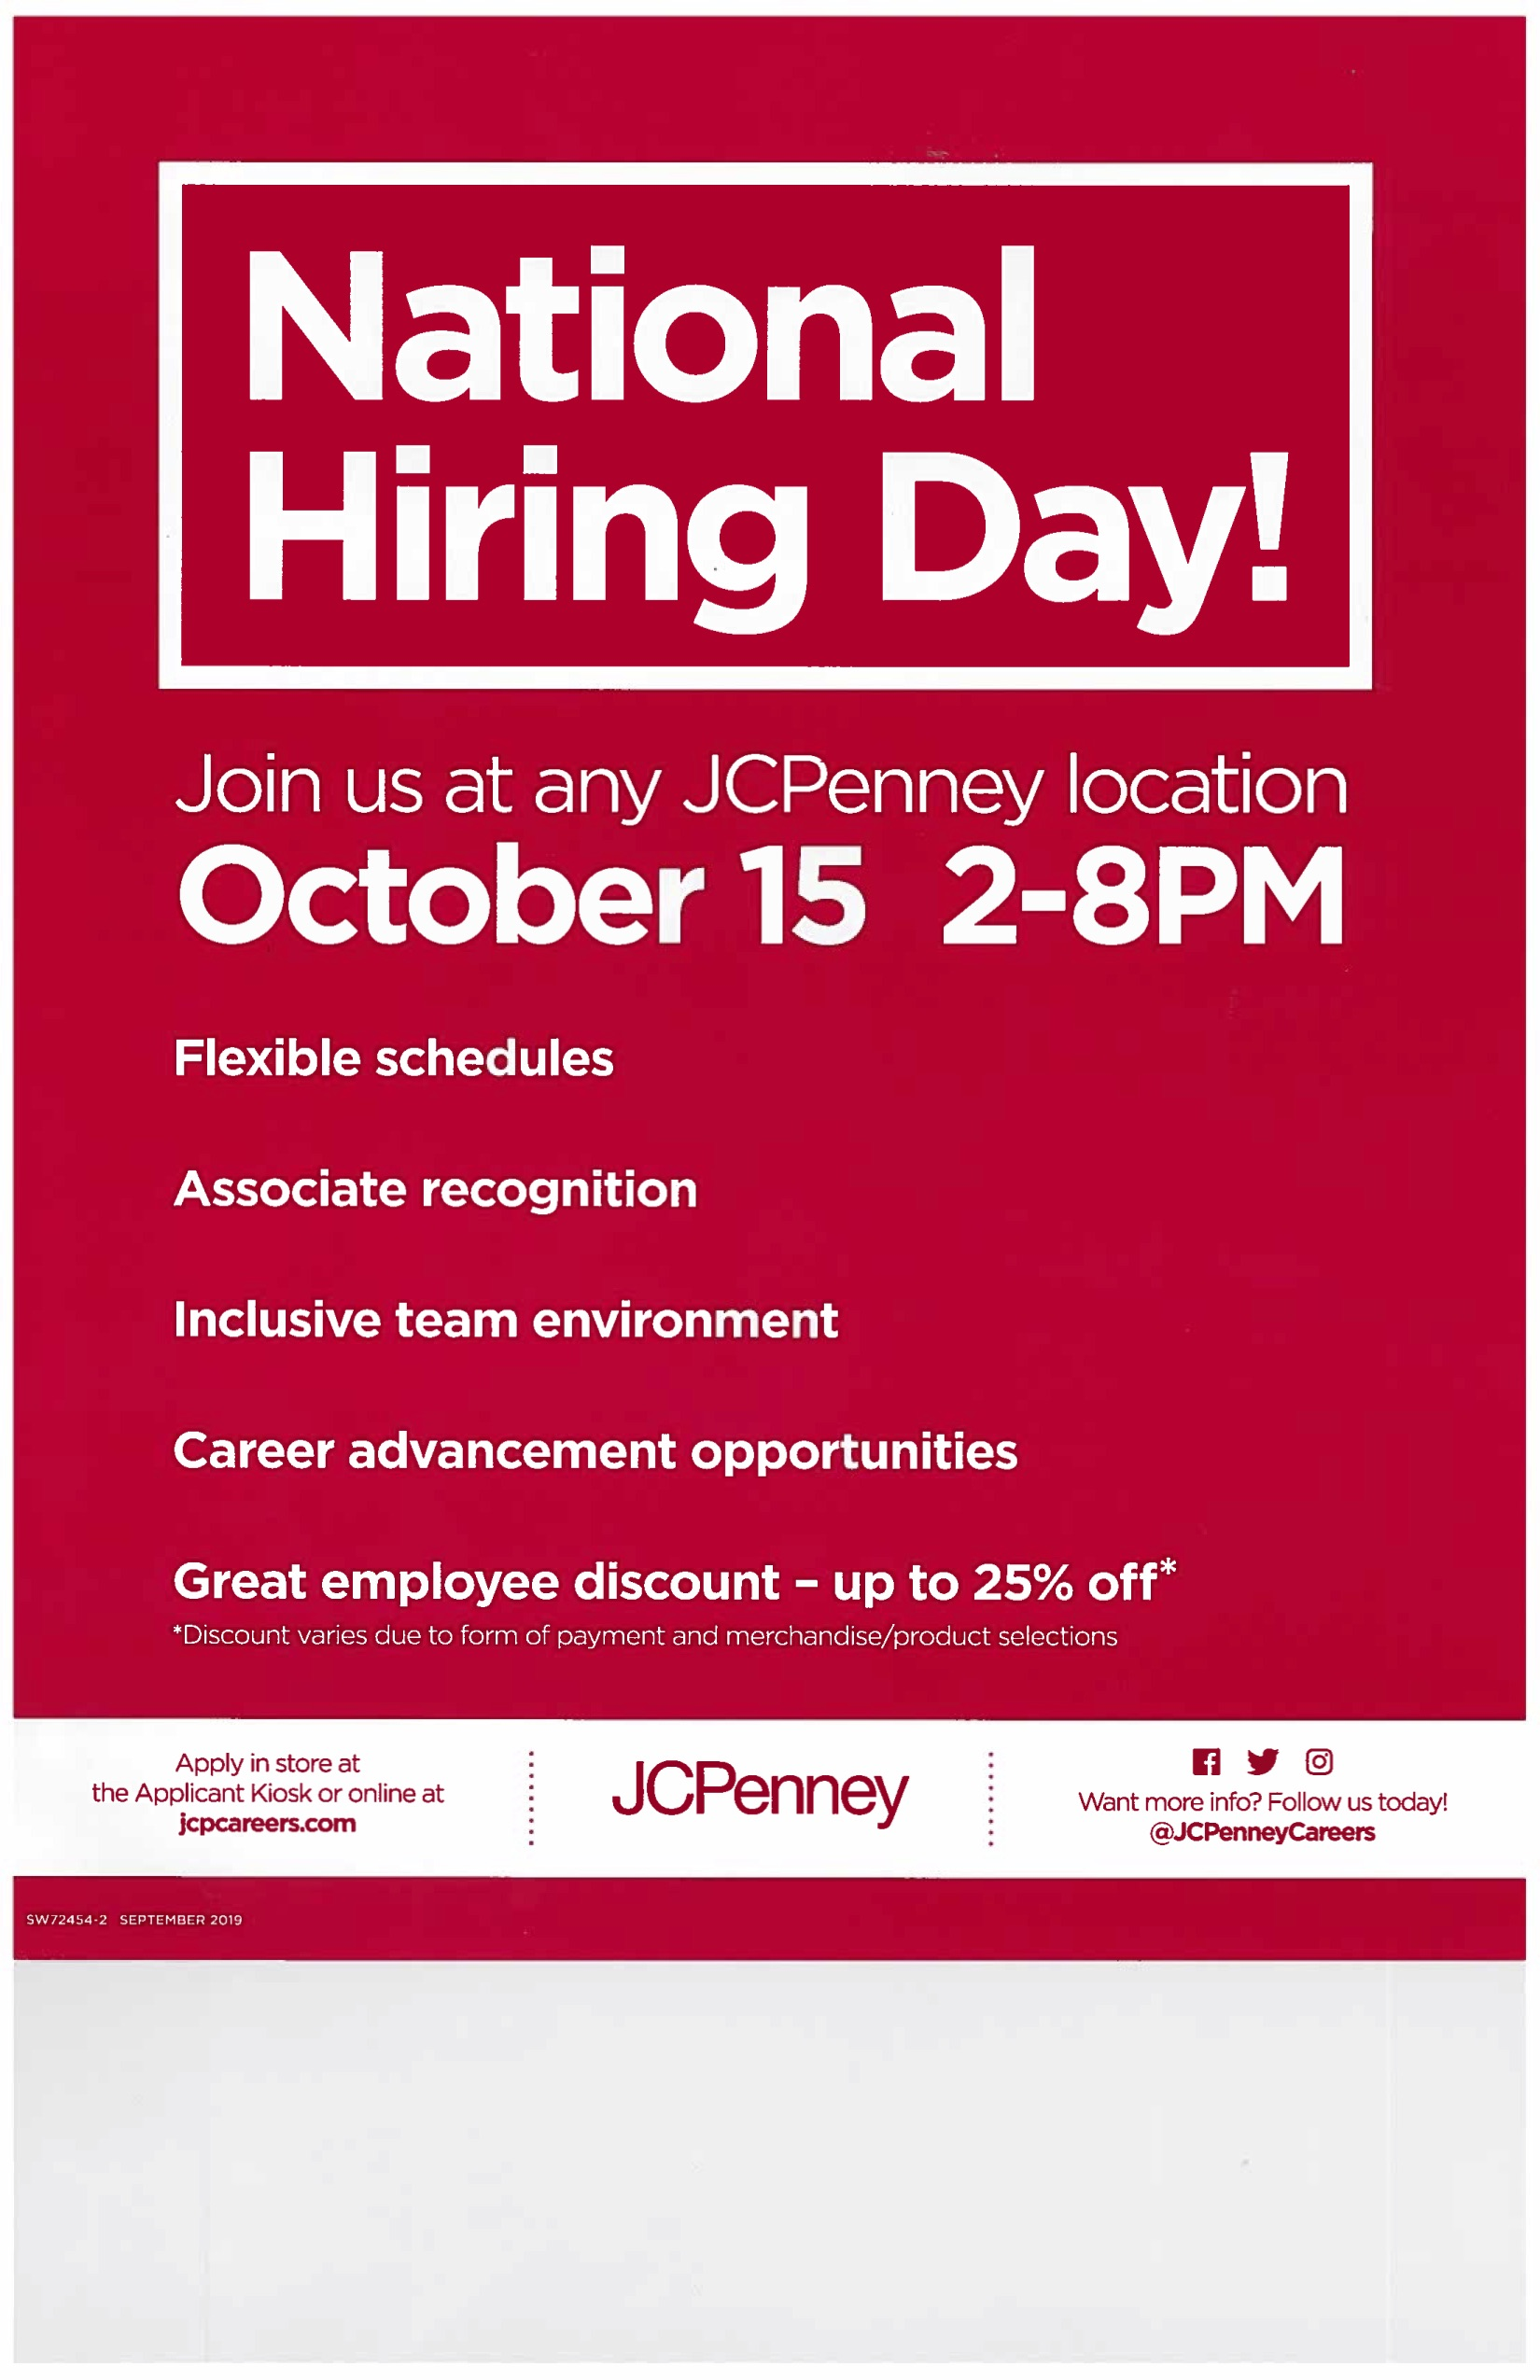 jcpenney national hiring event